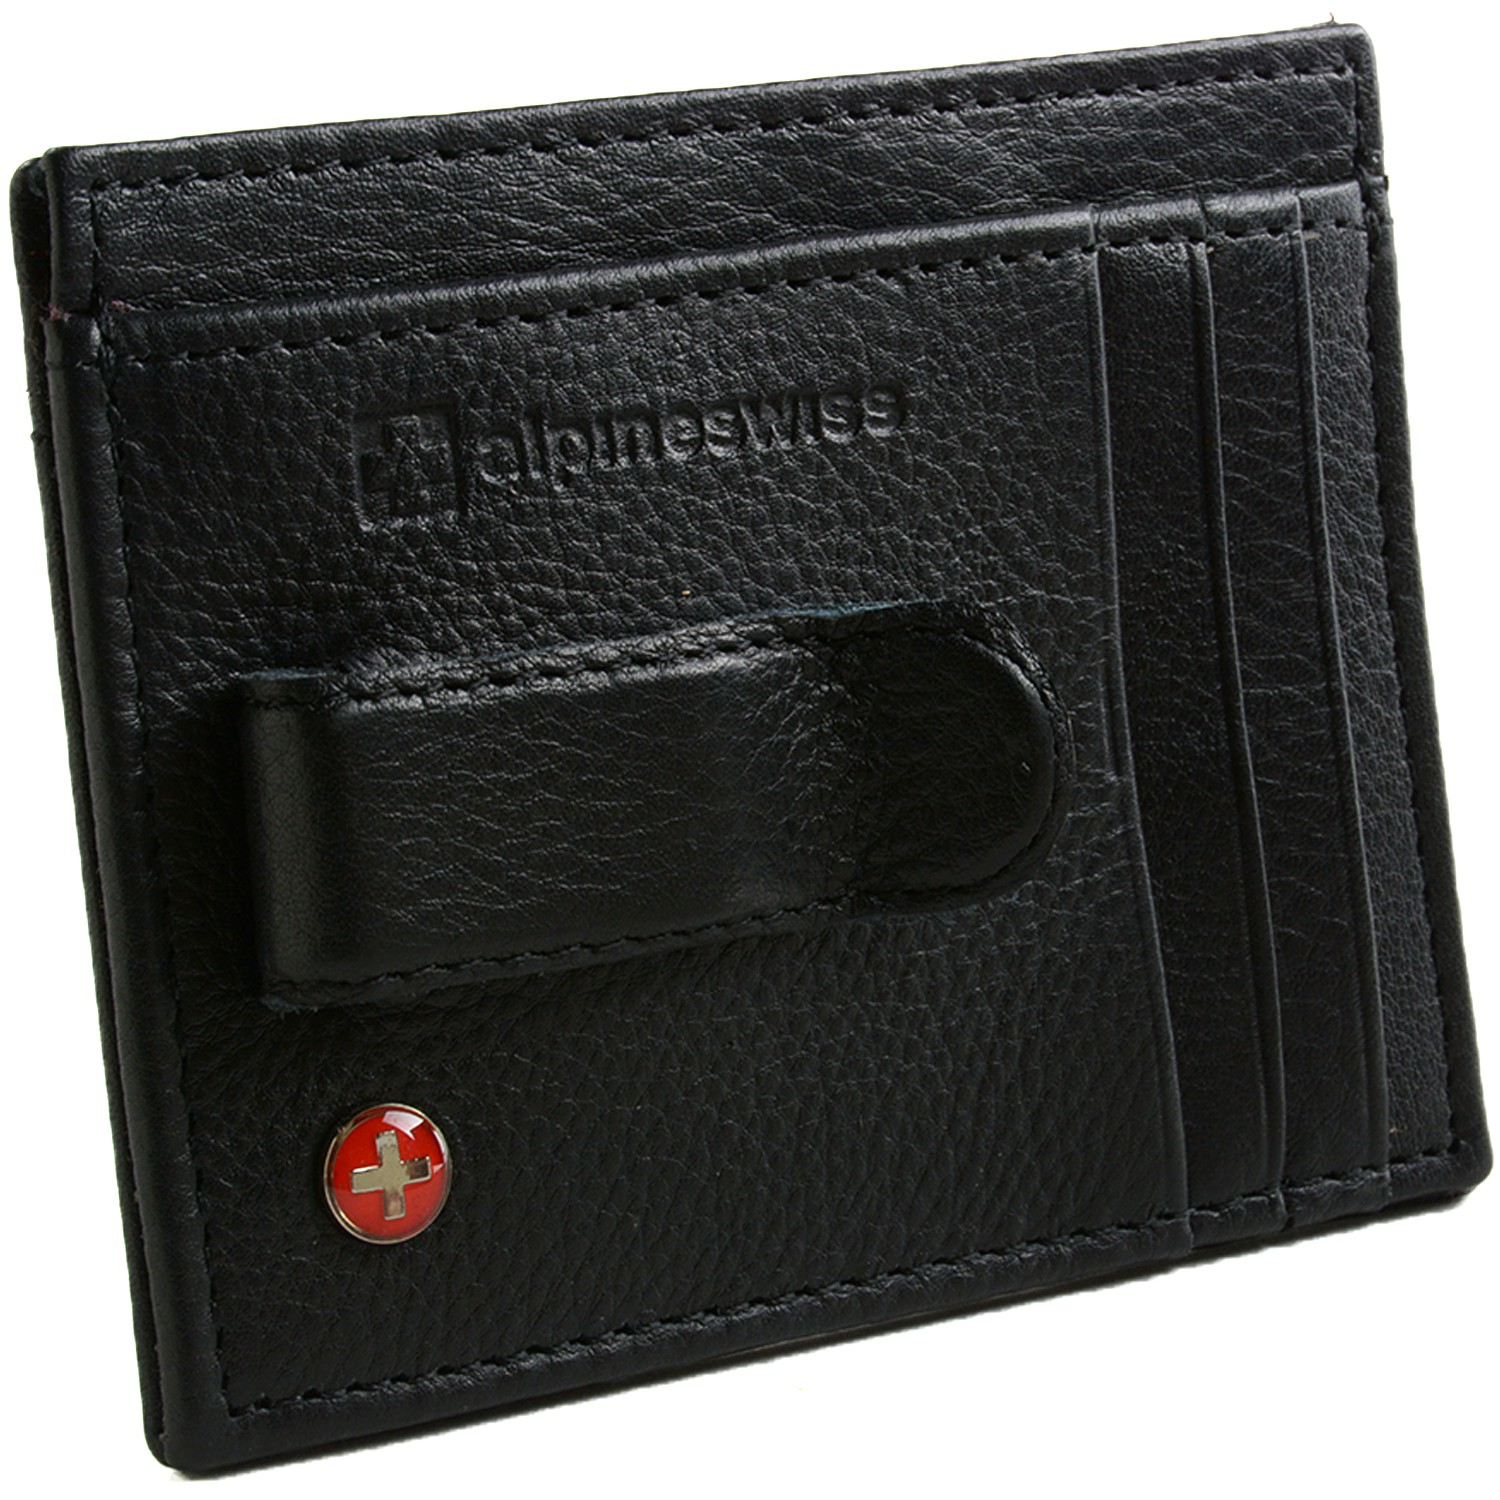 Alpine Swiss Mens Money Clip Genuine Leather Minimalist